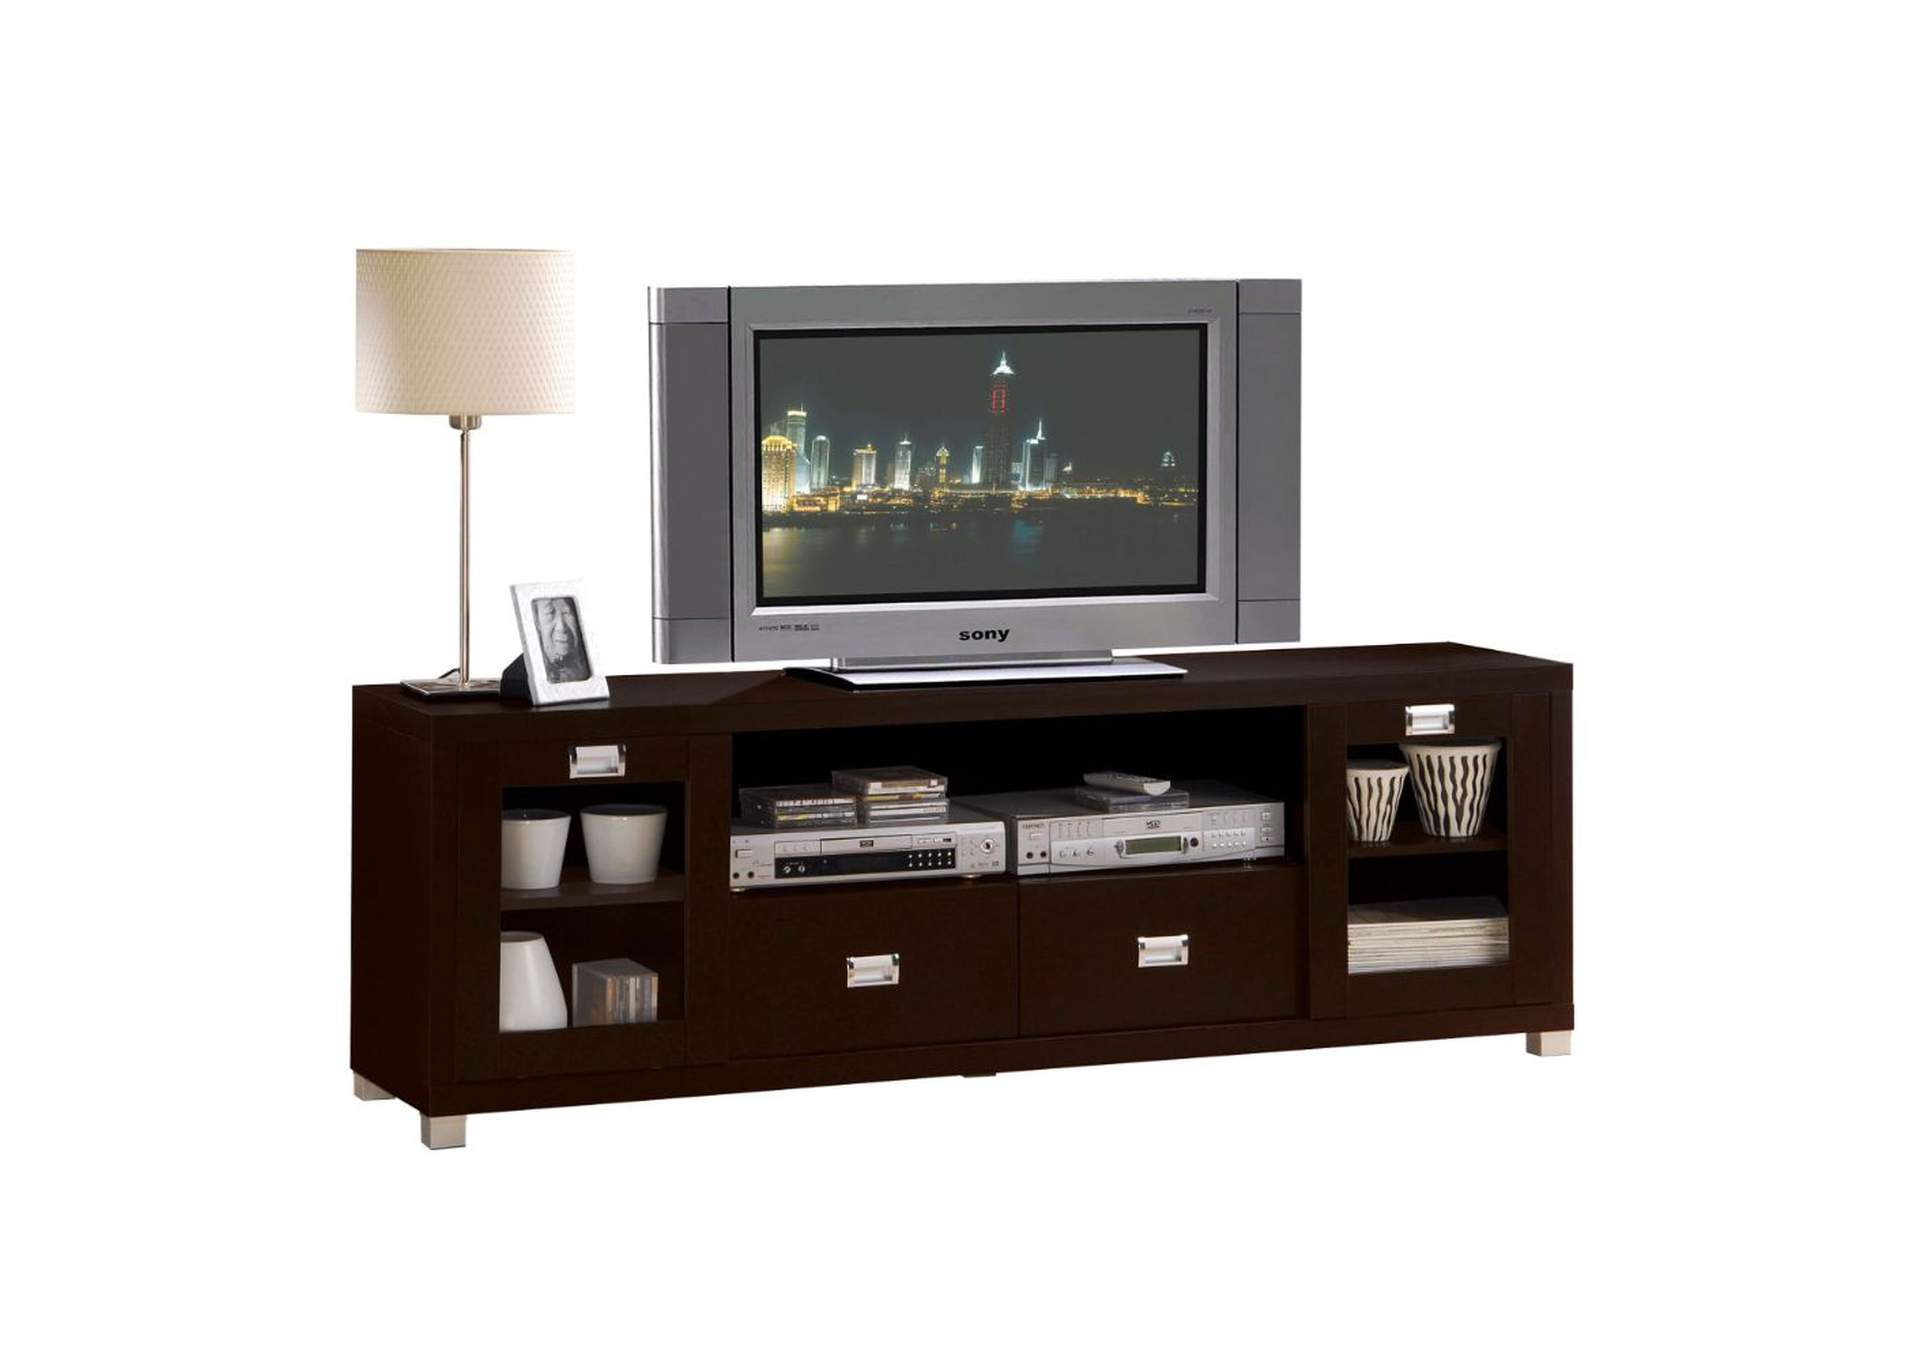 Commerce Espresso TV Stand,Acme